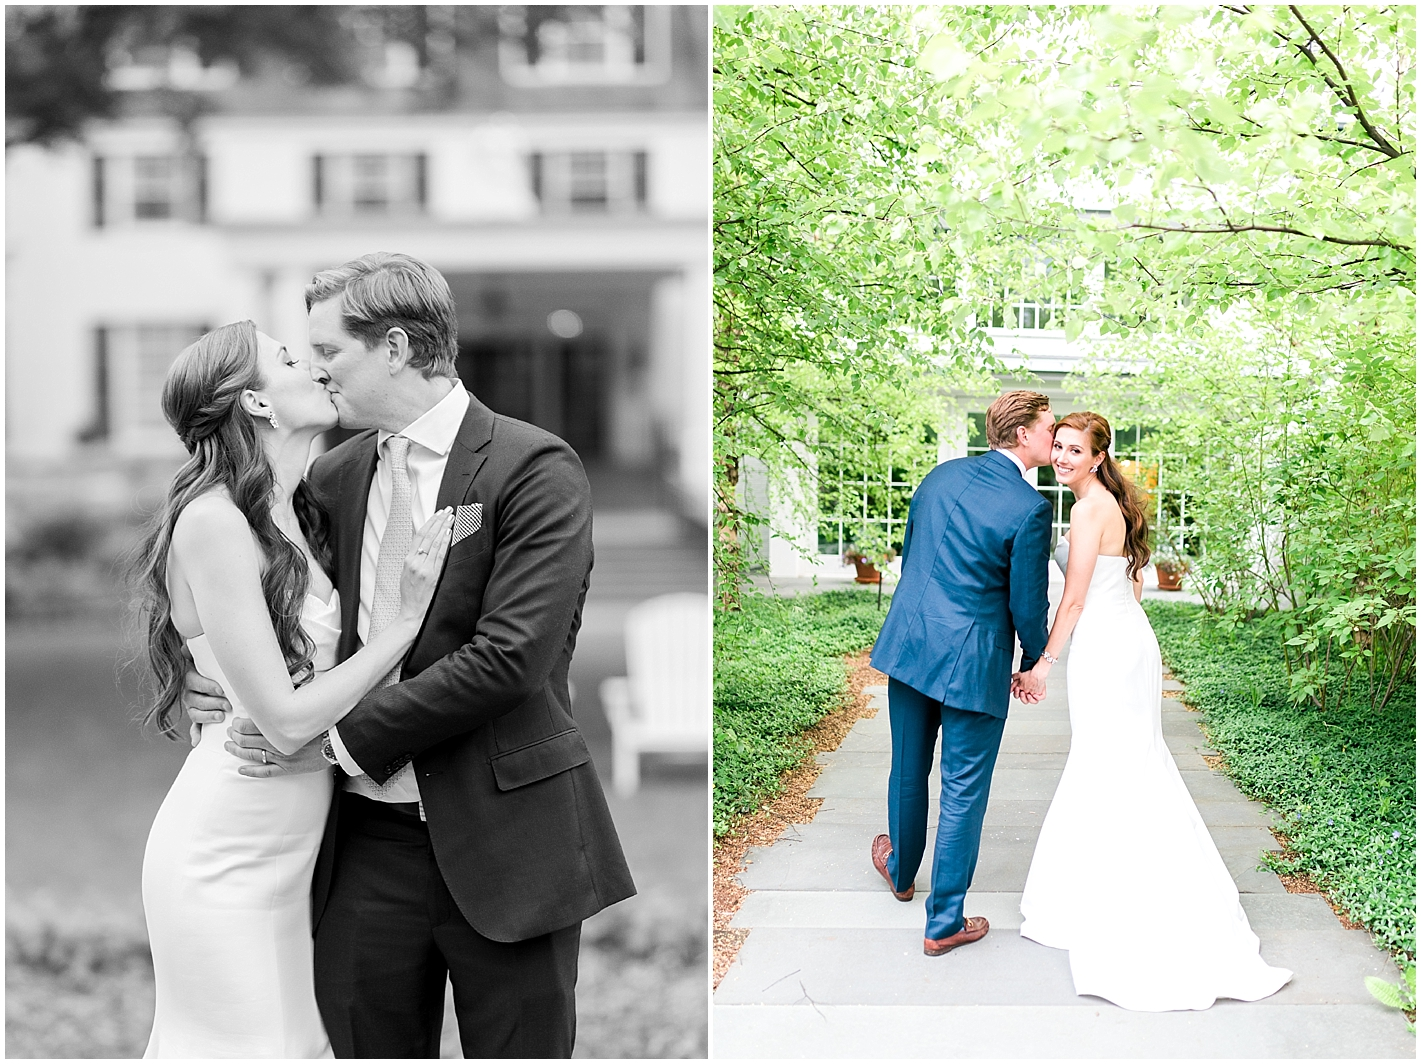 Woodstock Inn June Wedding Portraits By Alyssa Parker Photography